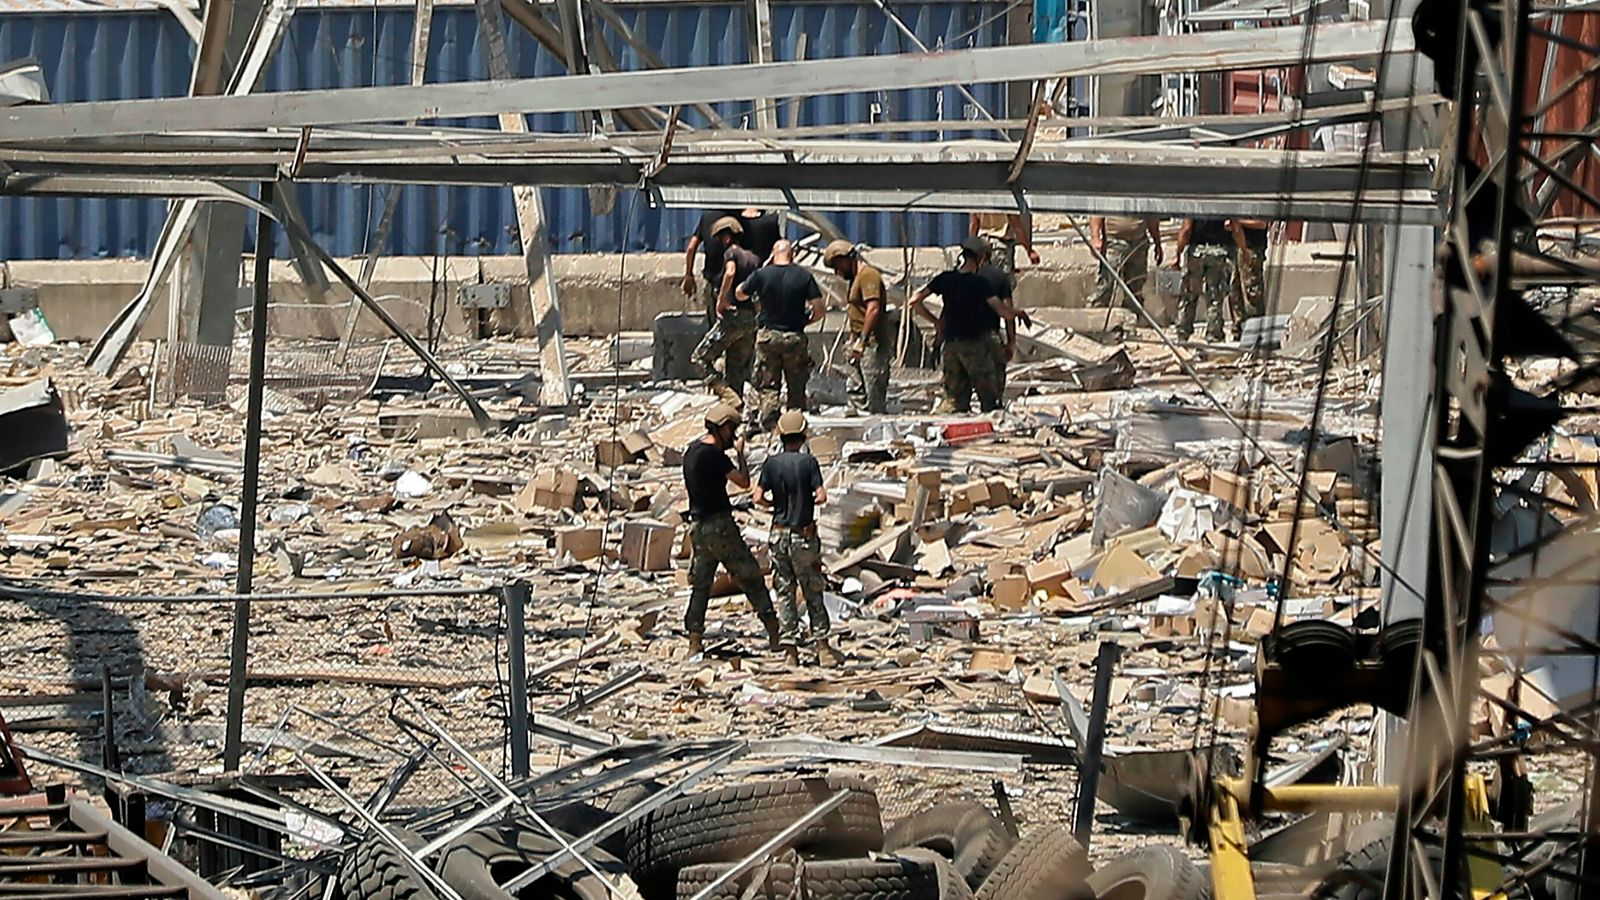 Beirut is still in collective shock - but the anger will come soon